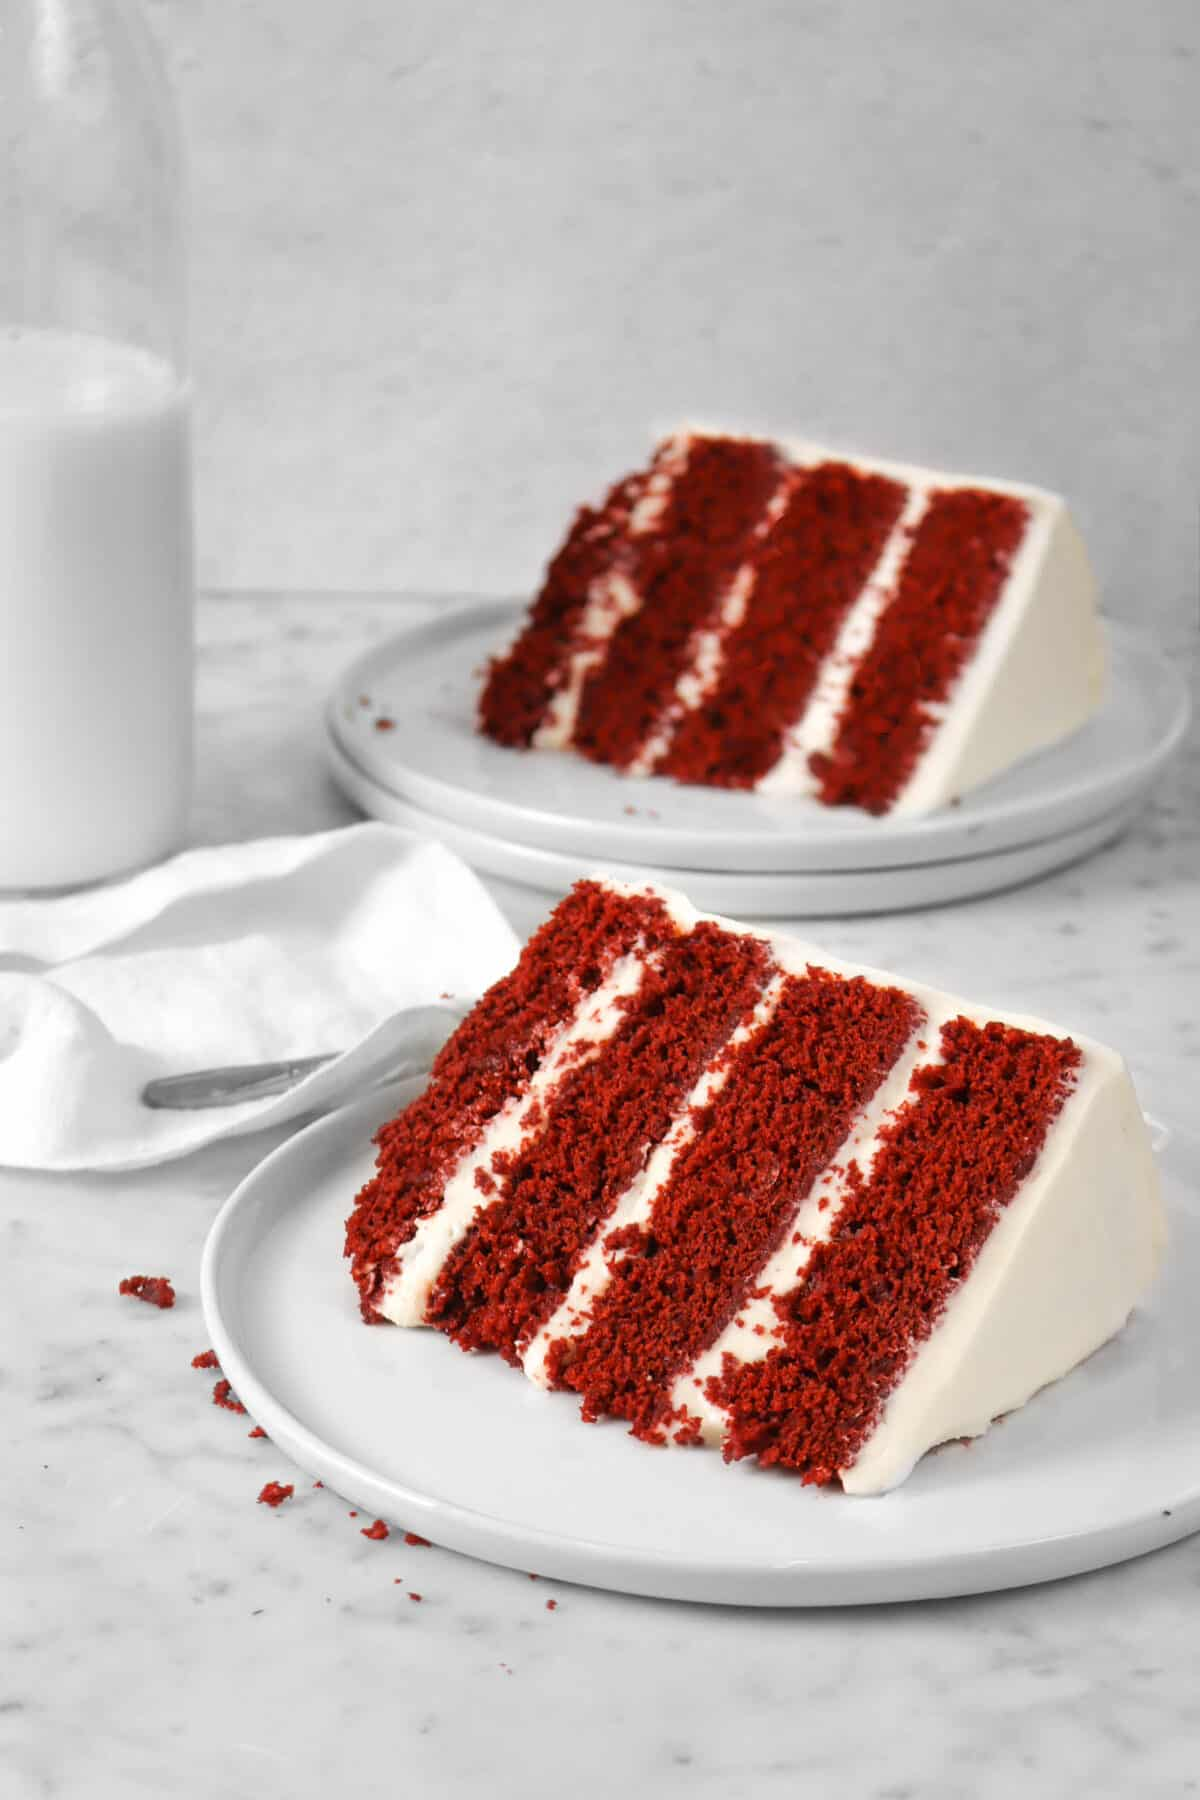 two slices of red velvet cake on white plates with a white napkin and a jug of milk